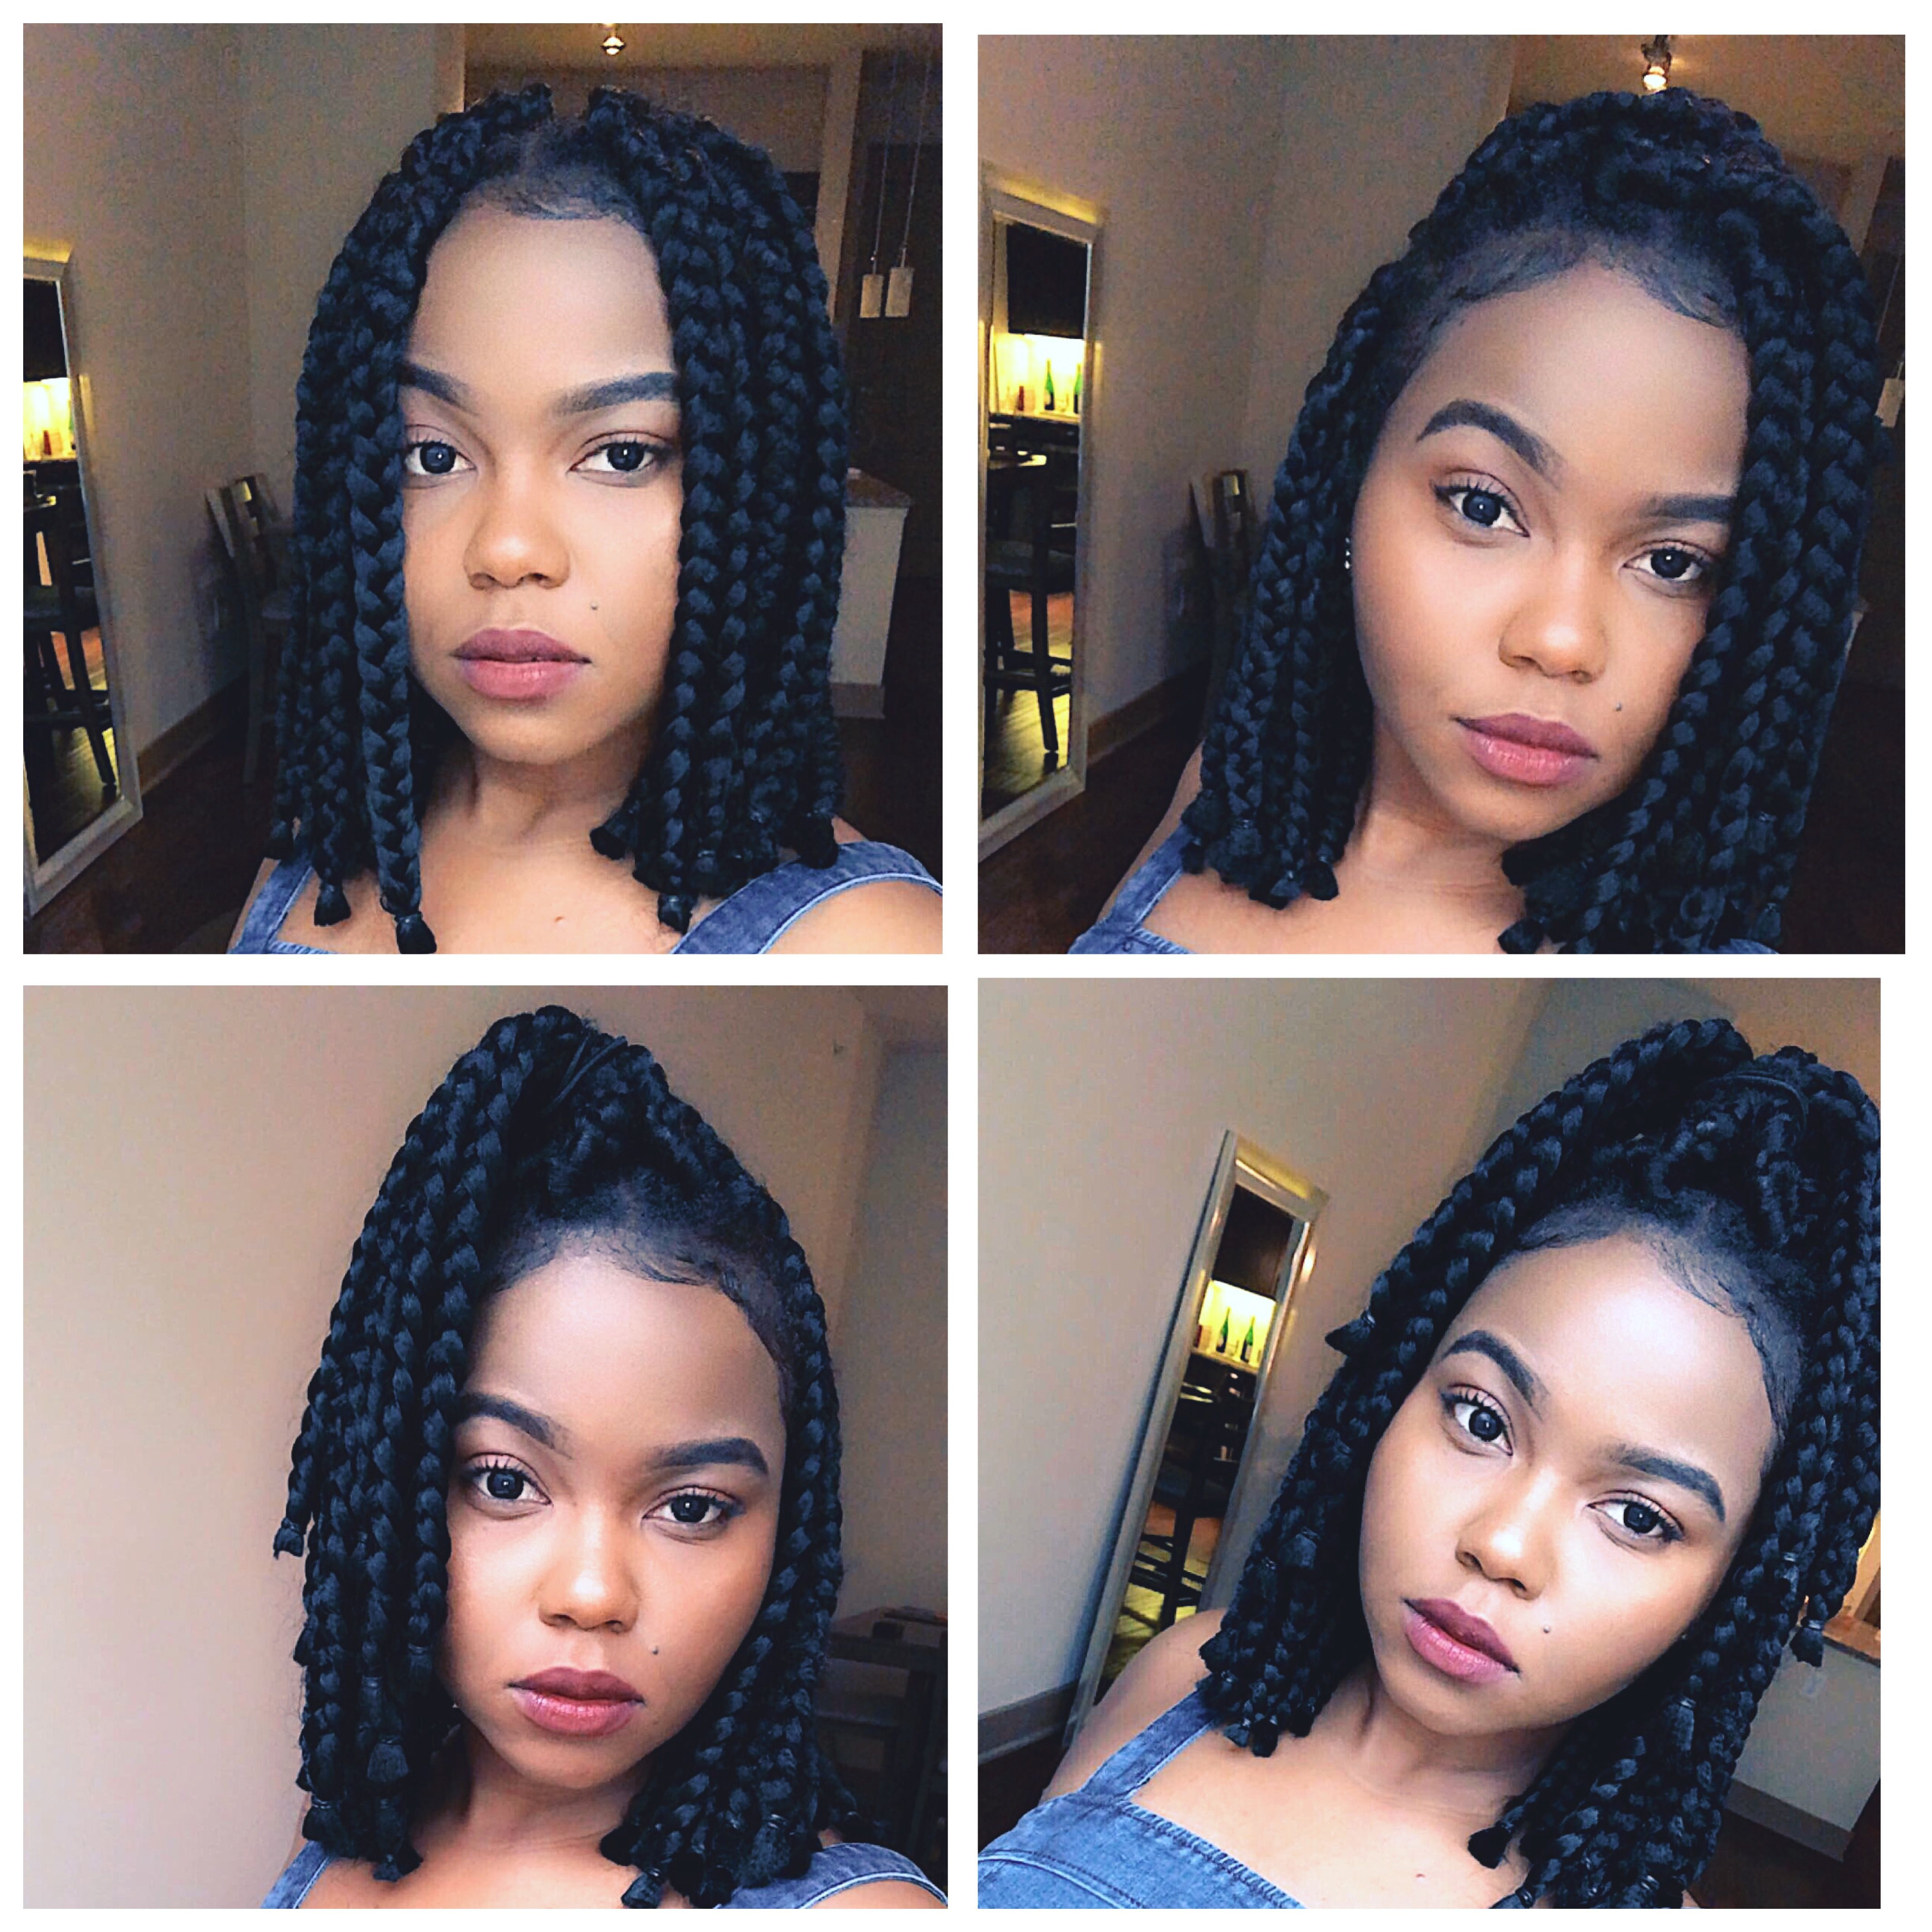 pin by willma ernestina🌻 on braids ❤️ in 2019   short box